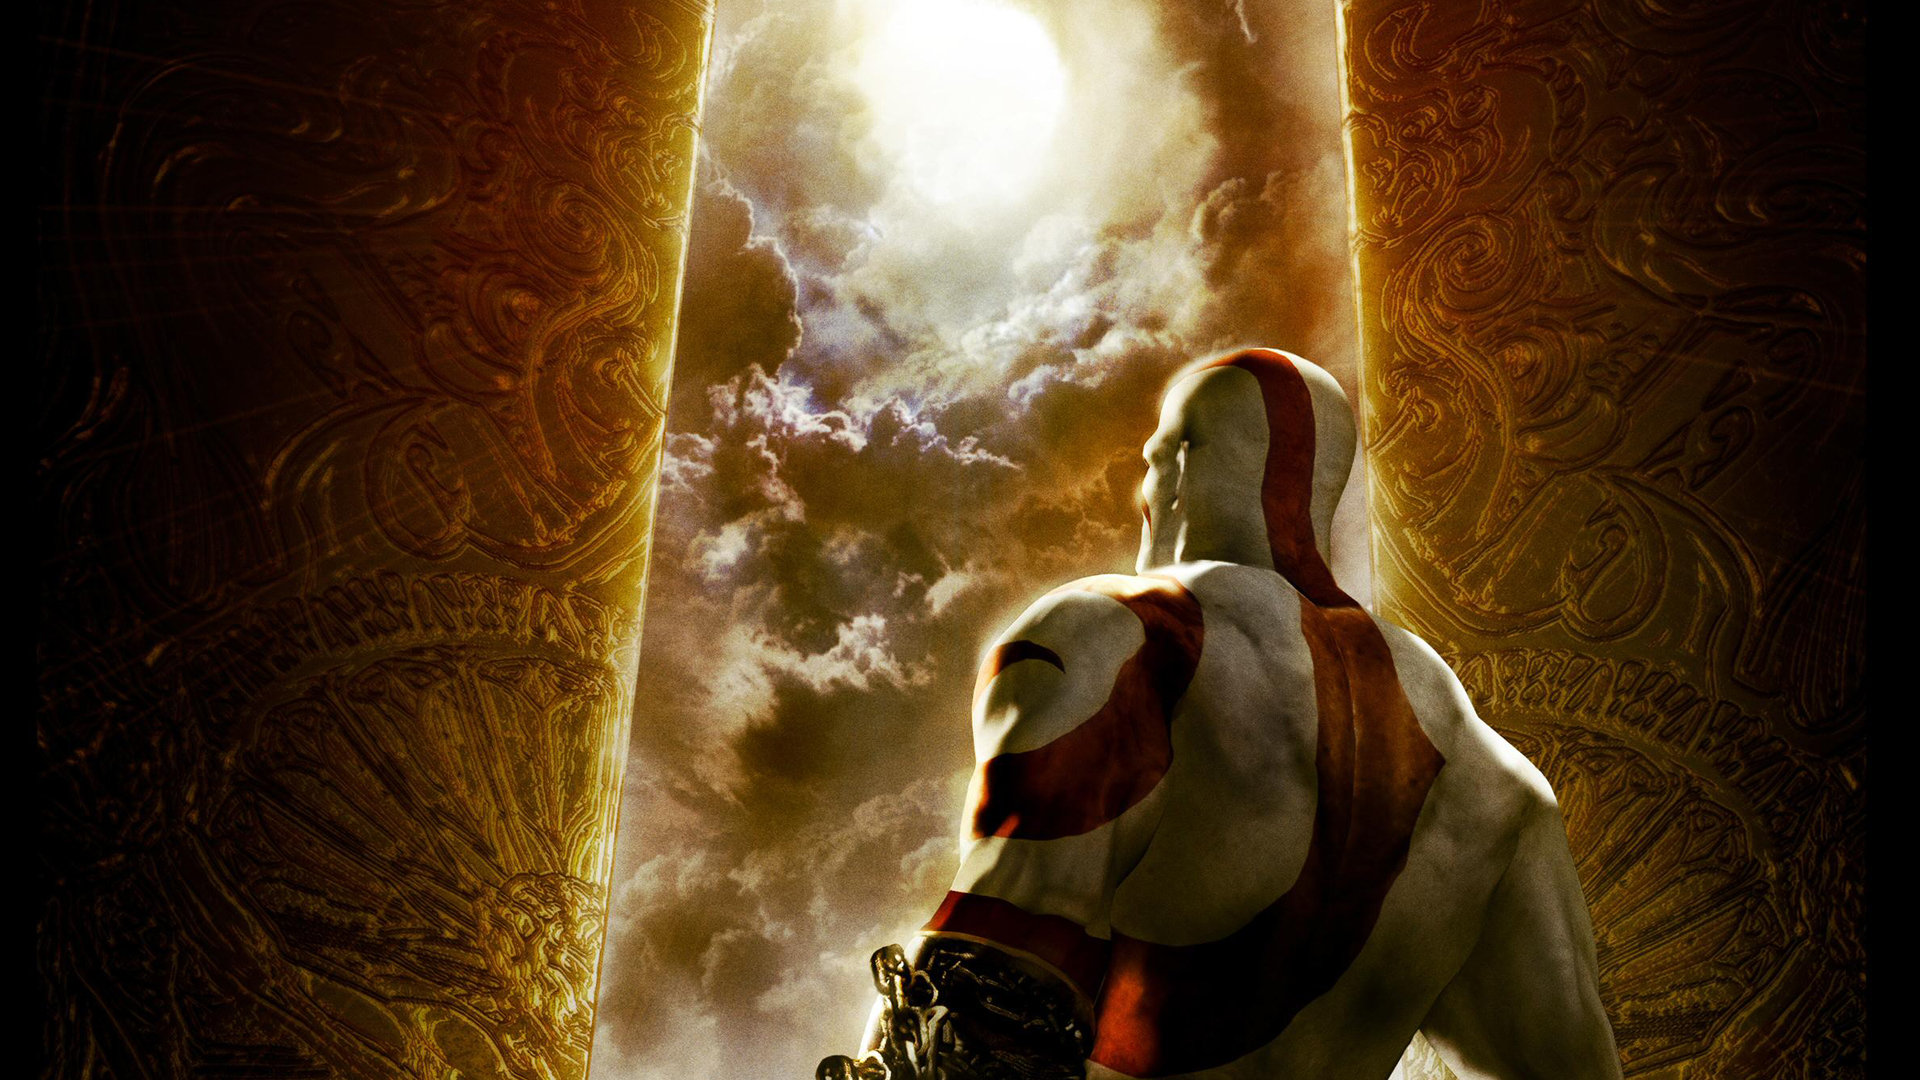 Free Download God Of War 3 Wallpaper Id 40741 Hd 1080p For Pc